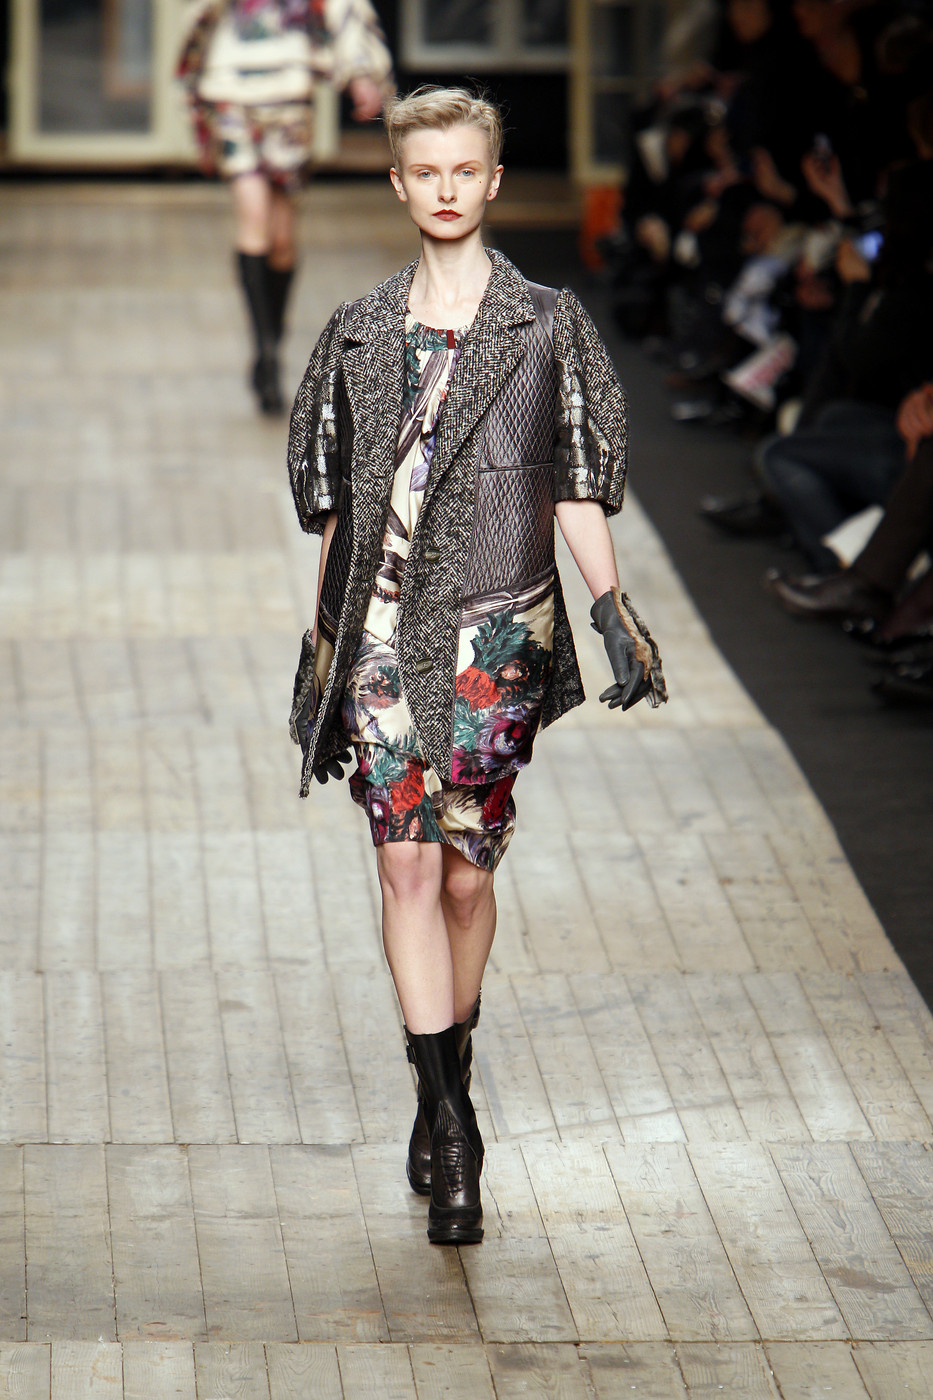 Antonio marras at milan fashion week fall 2010 livingly Fashion style via antonio panizzi